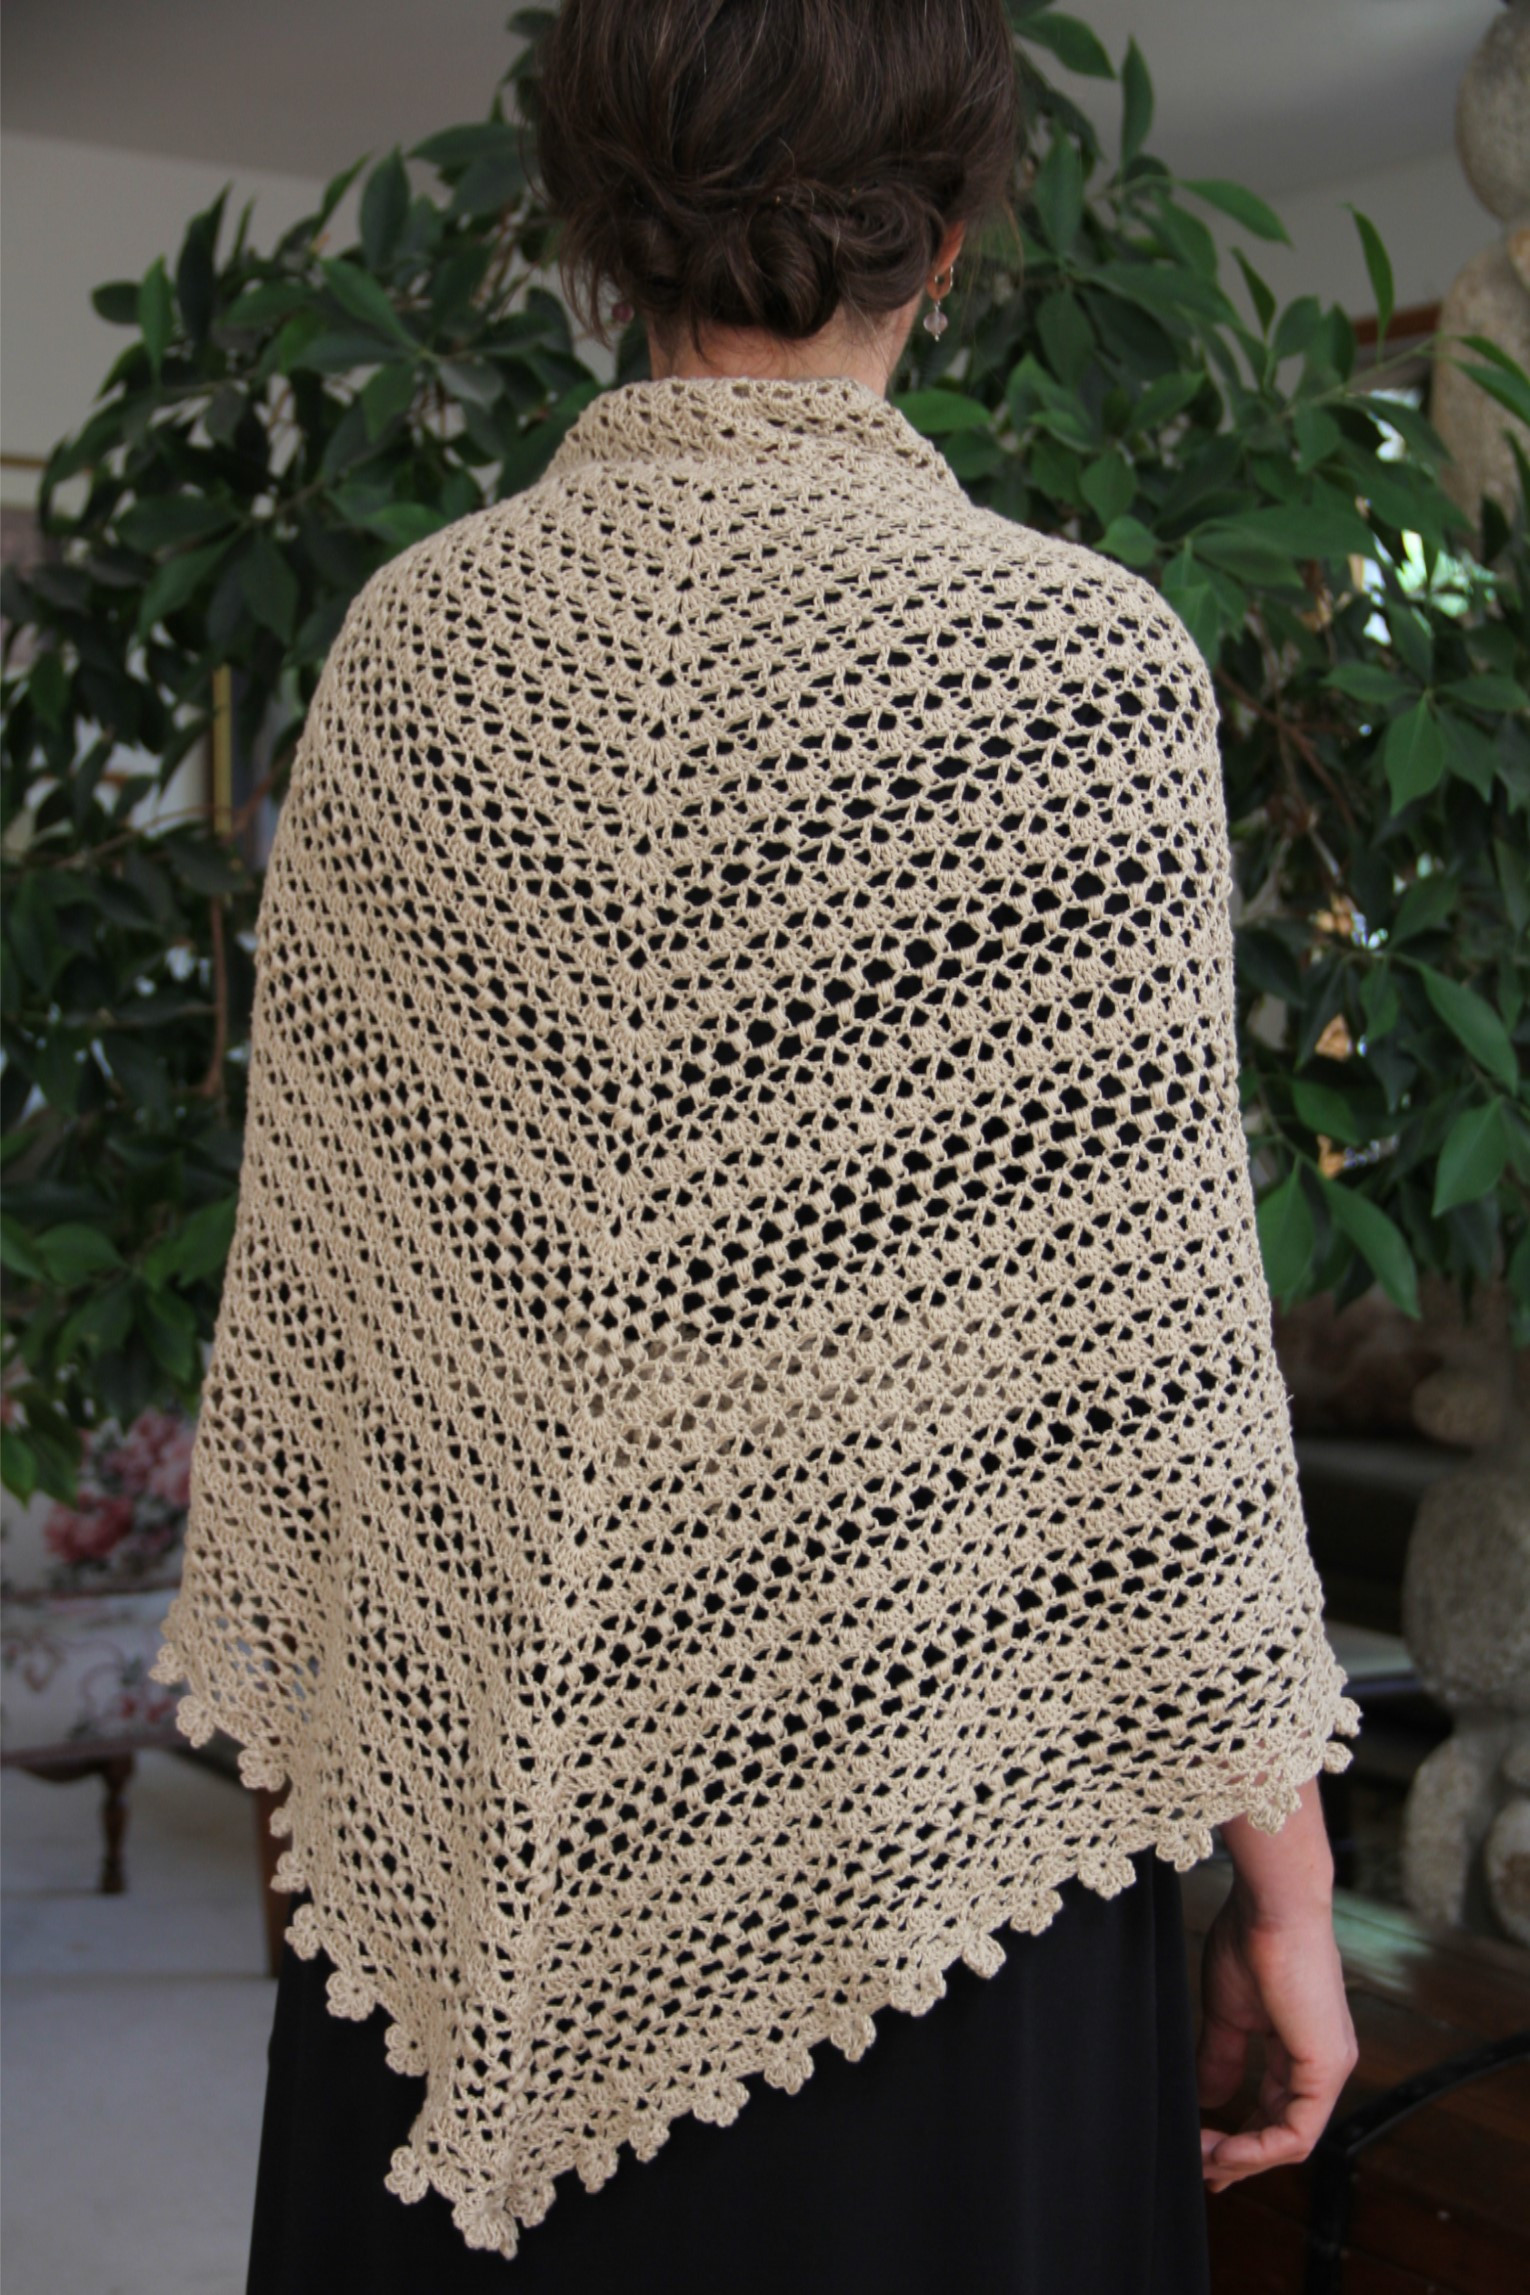 Prayer Shawl Crochet Pattern Inspirational 58 Shawl Crochet Pattern Free Crochet Pattern Wrap Shawl Of Great 41 Pictures Prayer Shawl Crochet Pattern